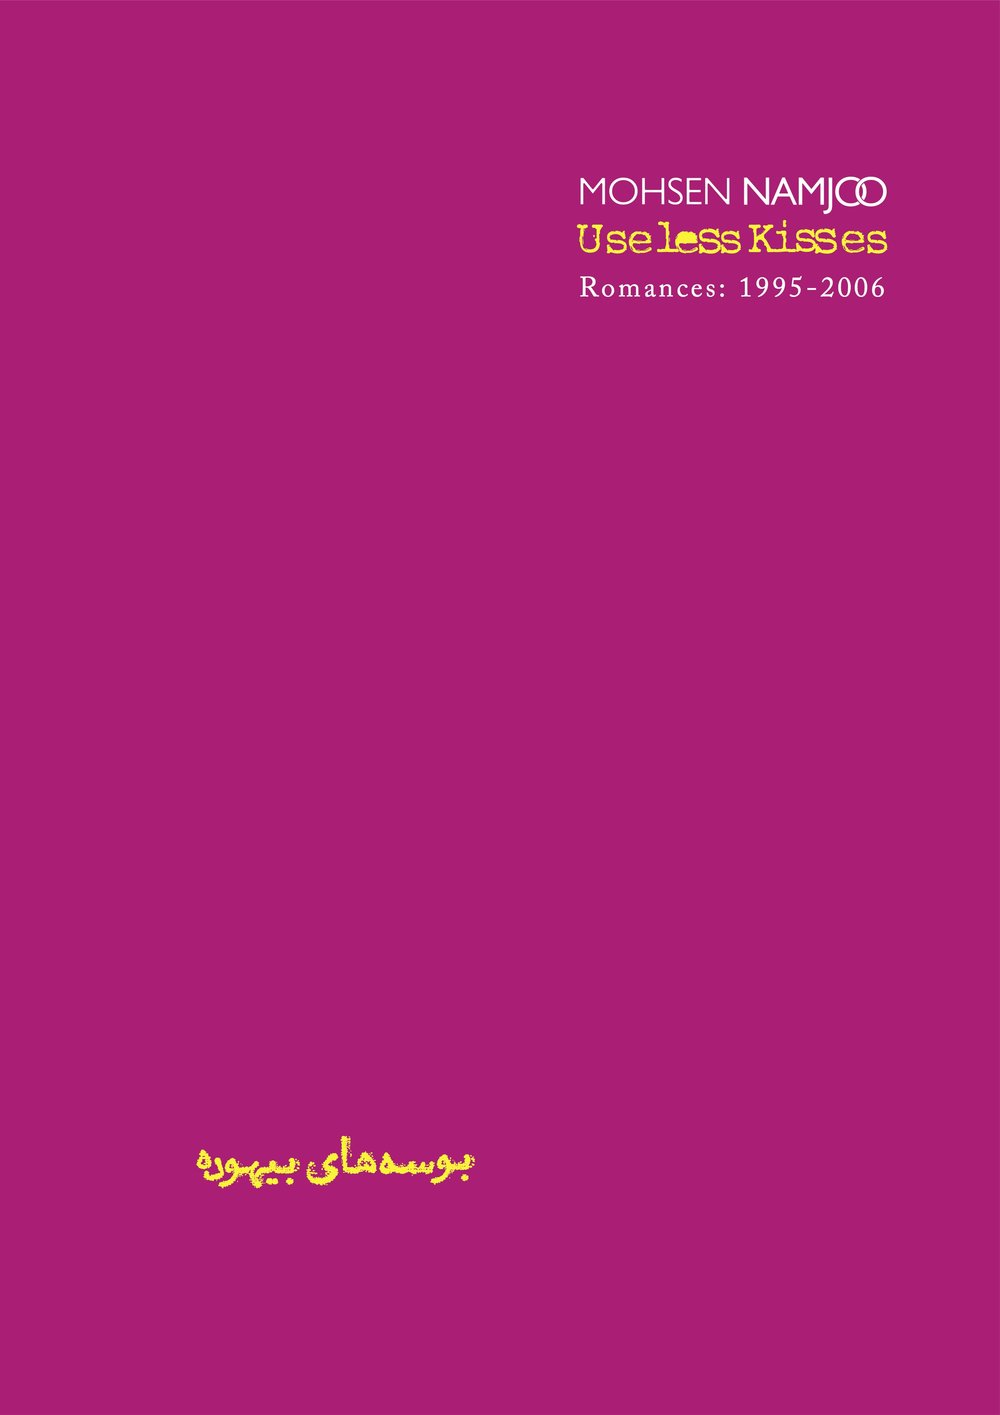 00Useless Kisses eBook (2nd Edition).jpg